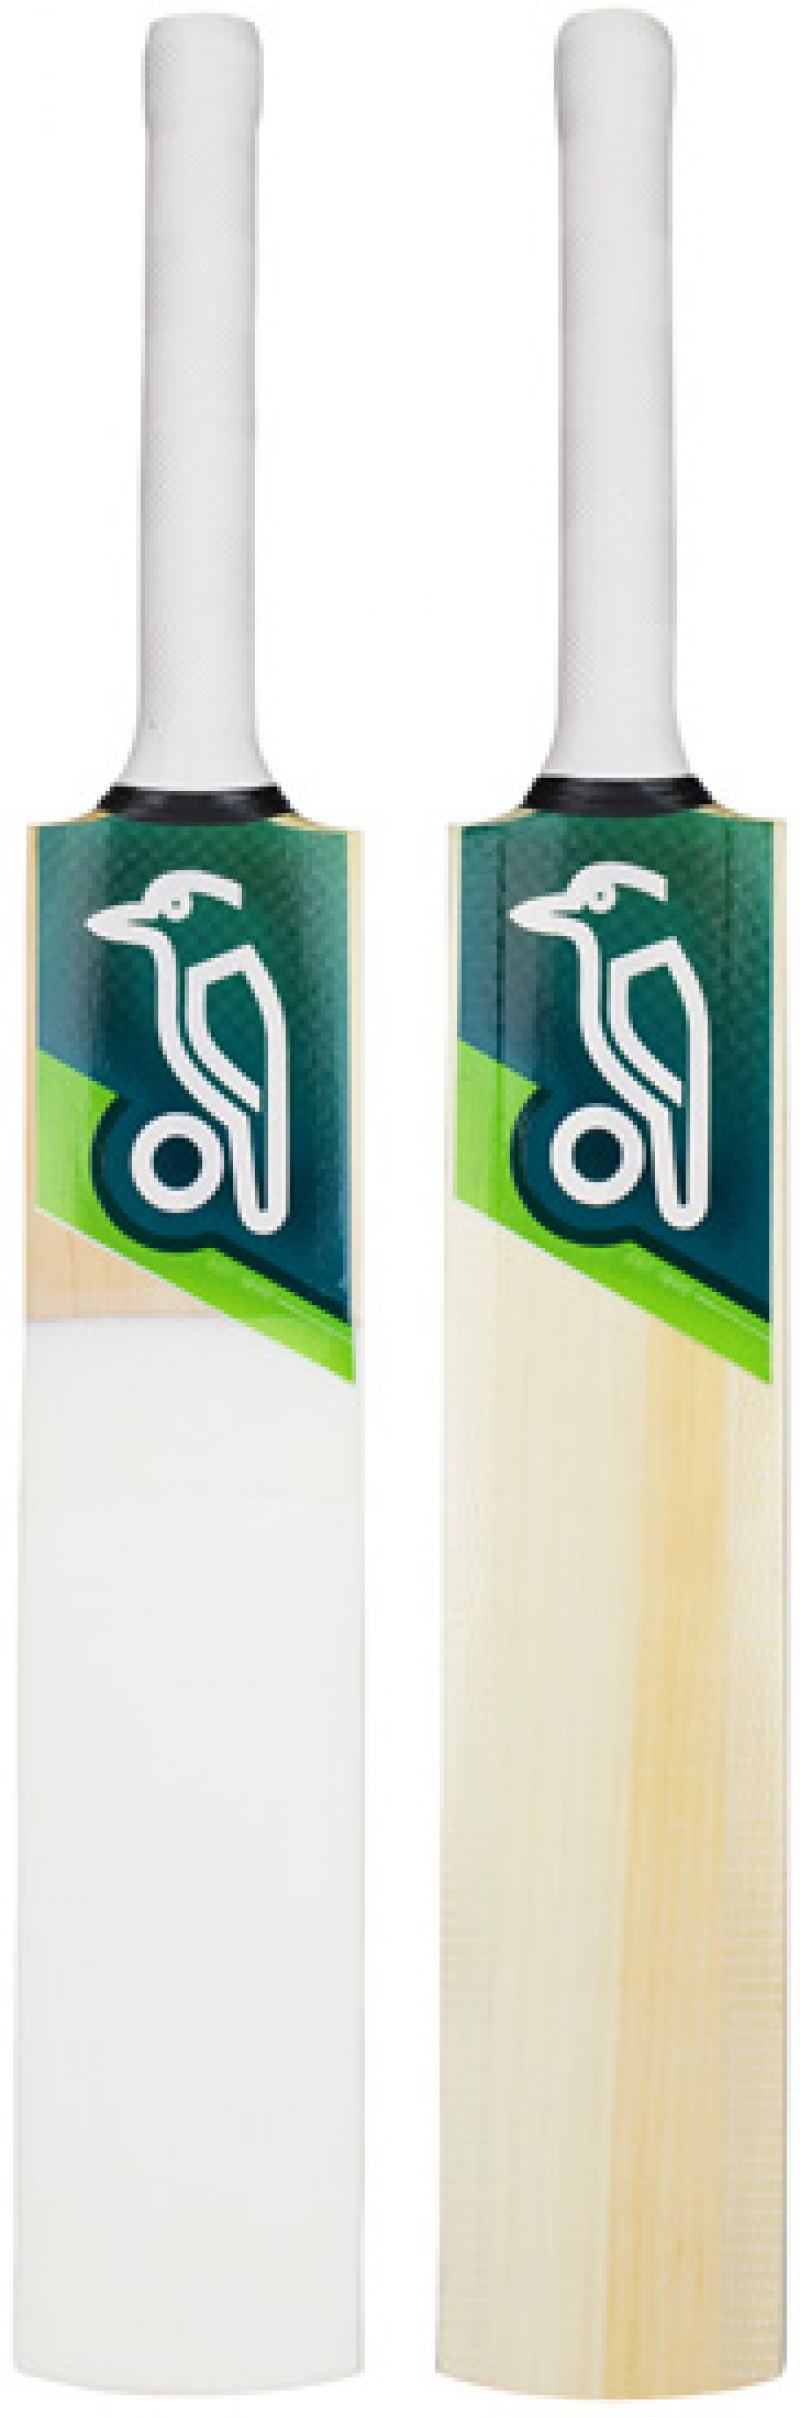 Kookaburra Combination Fielding and Slip Catching Bat